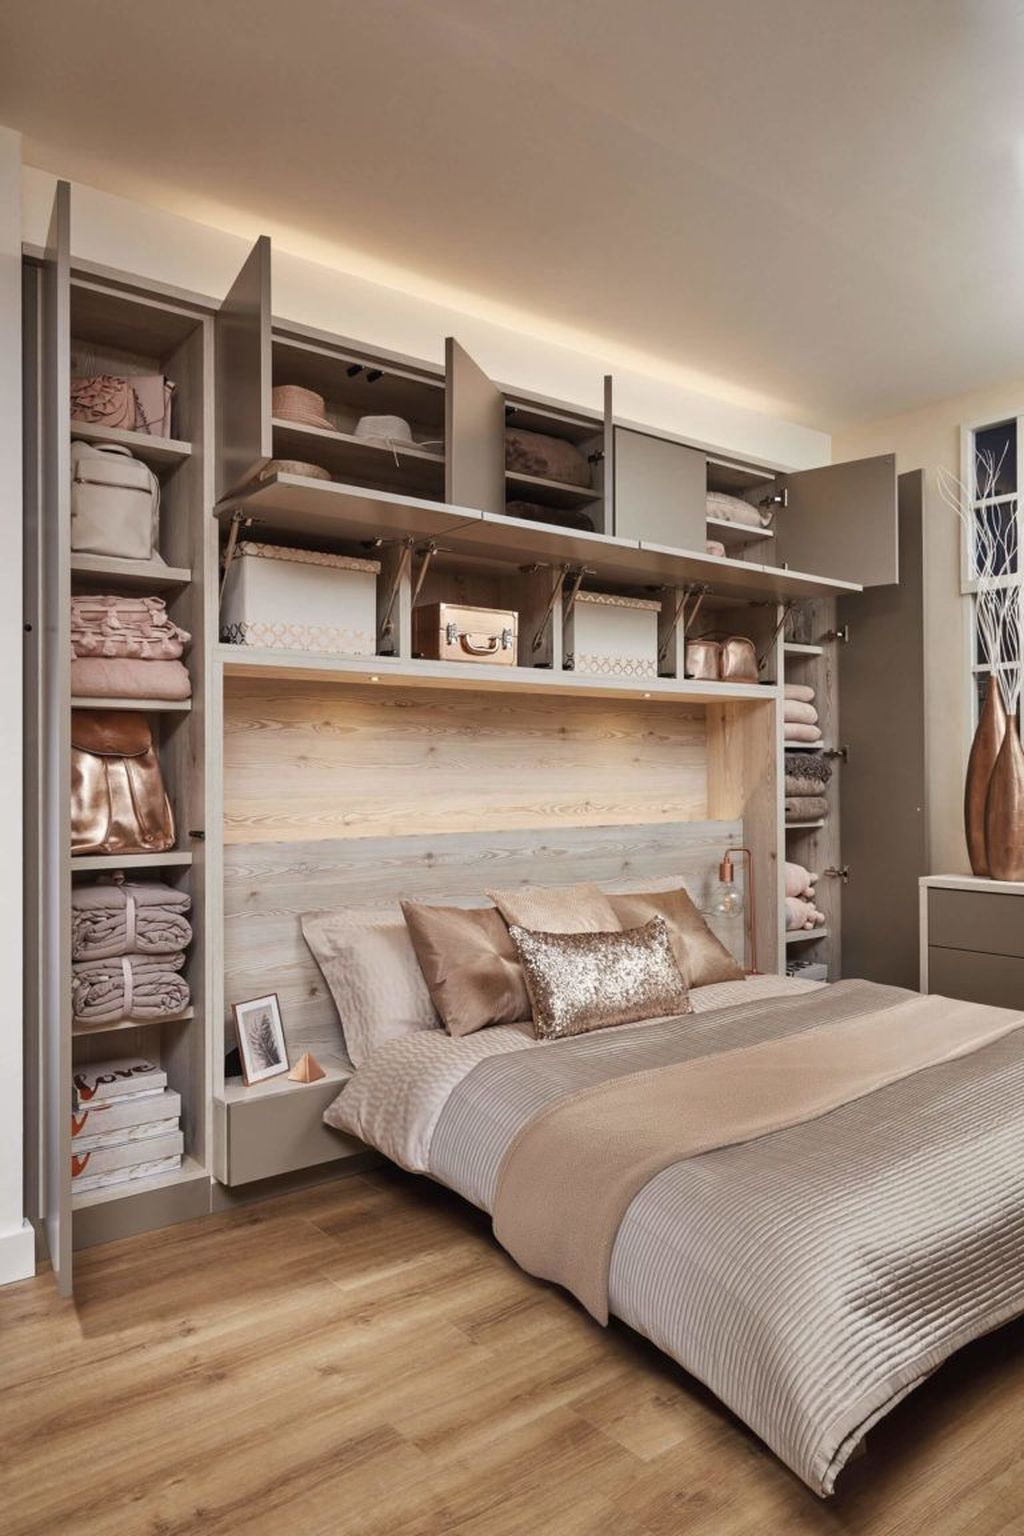 40 Splendid Furniture Ideas For Bedrooms Fitted Bedroom Furniture Fitted Bedrooms Small Bedroom Storage